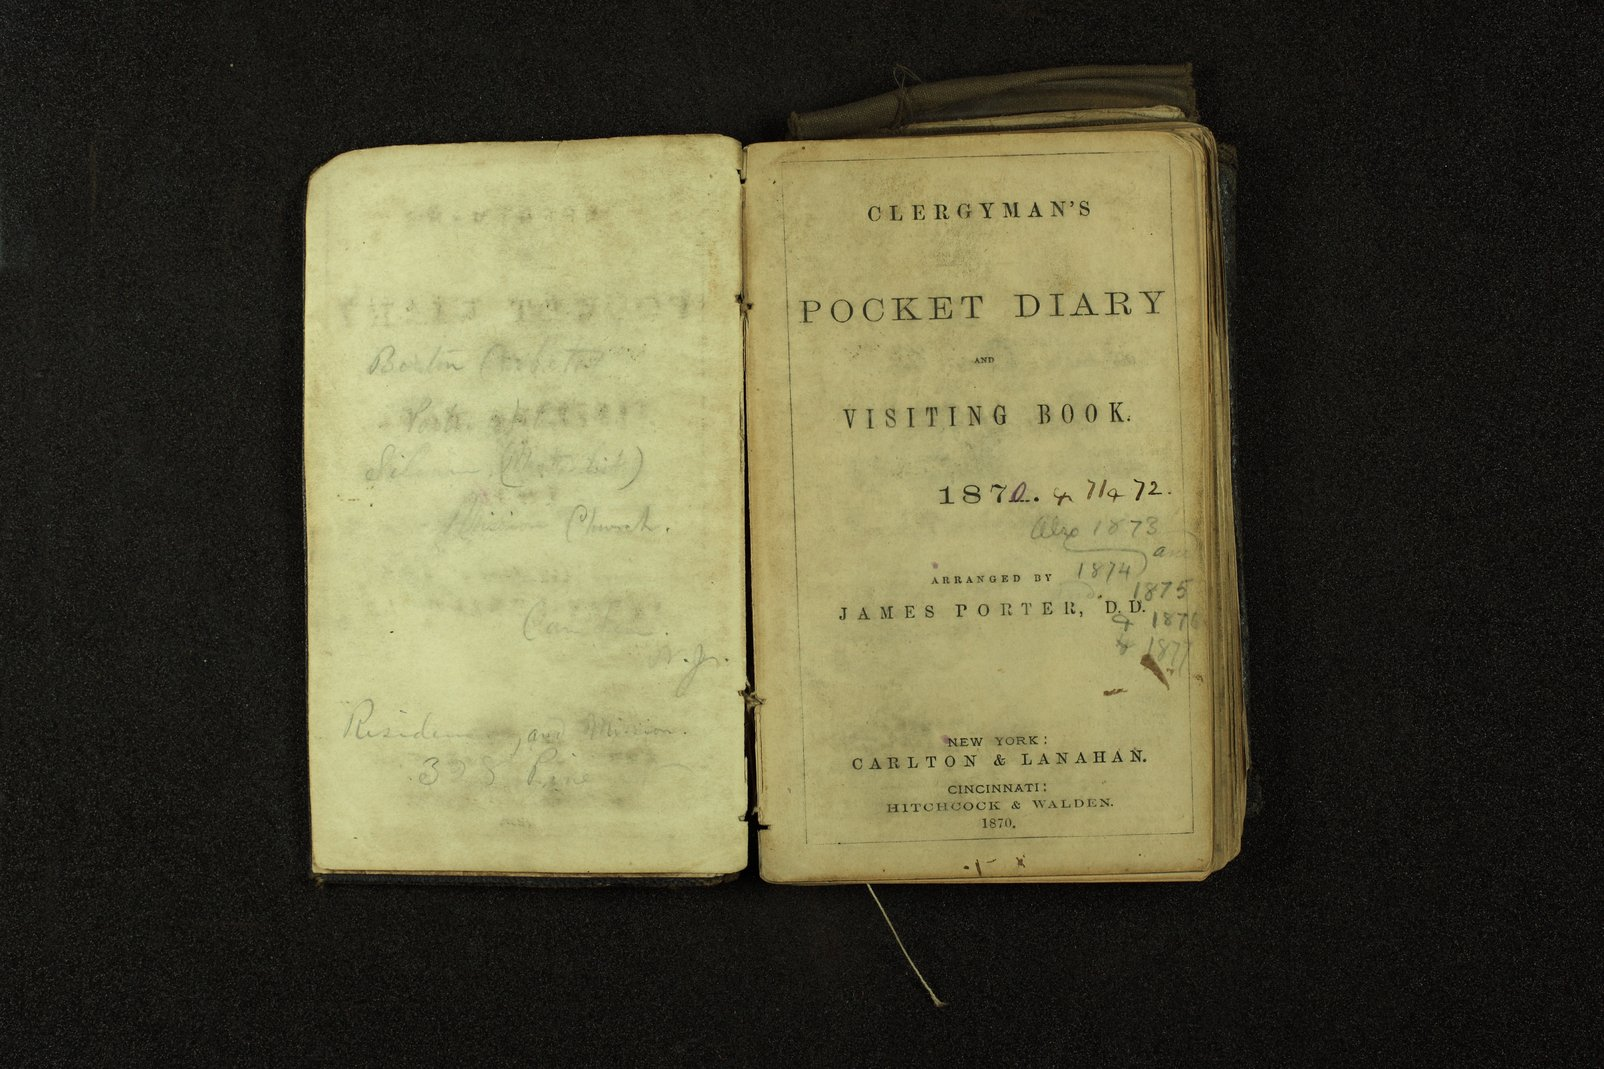 Clergyman's pocket diary and visiting book belonging to Boston Corbett - 1